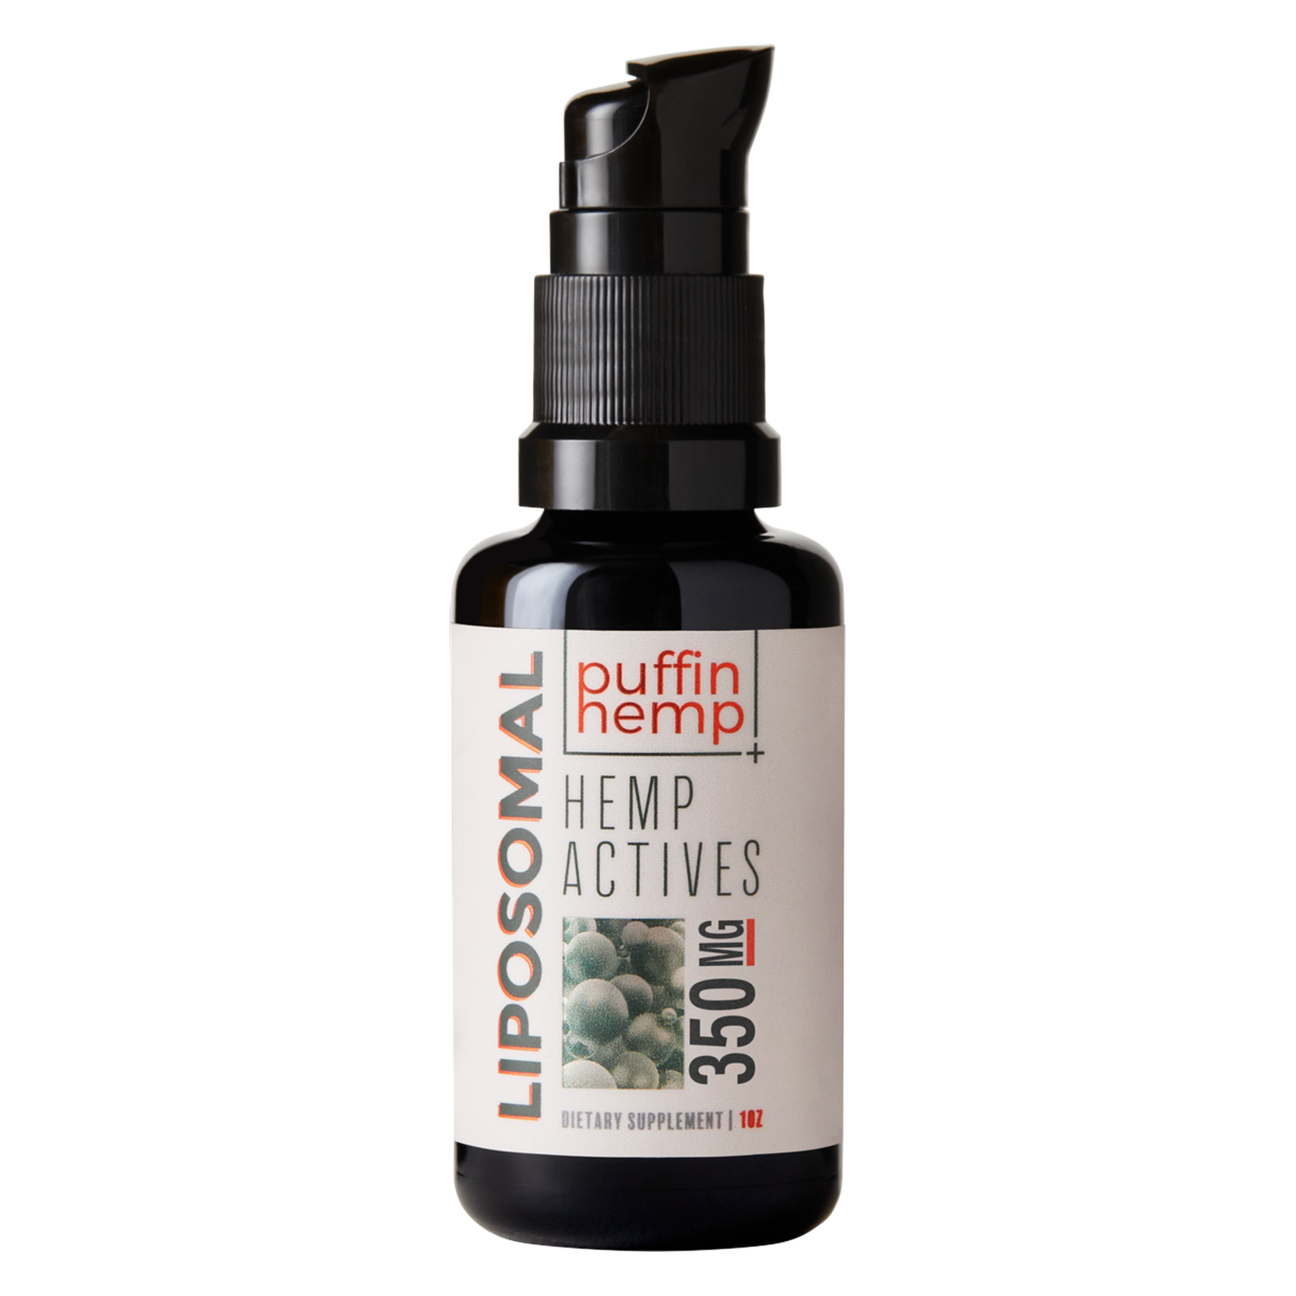 Puffin Hemp Liposomal CBD Oil 350mg